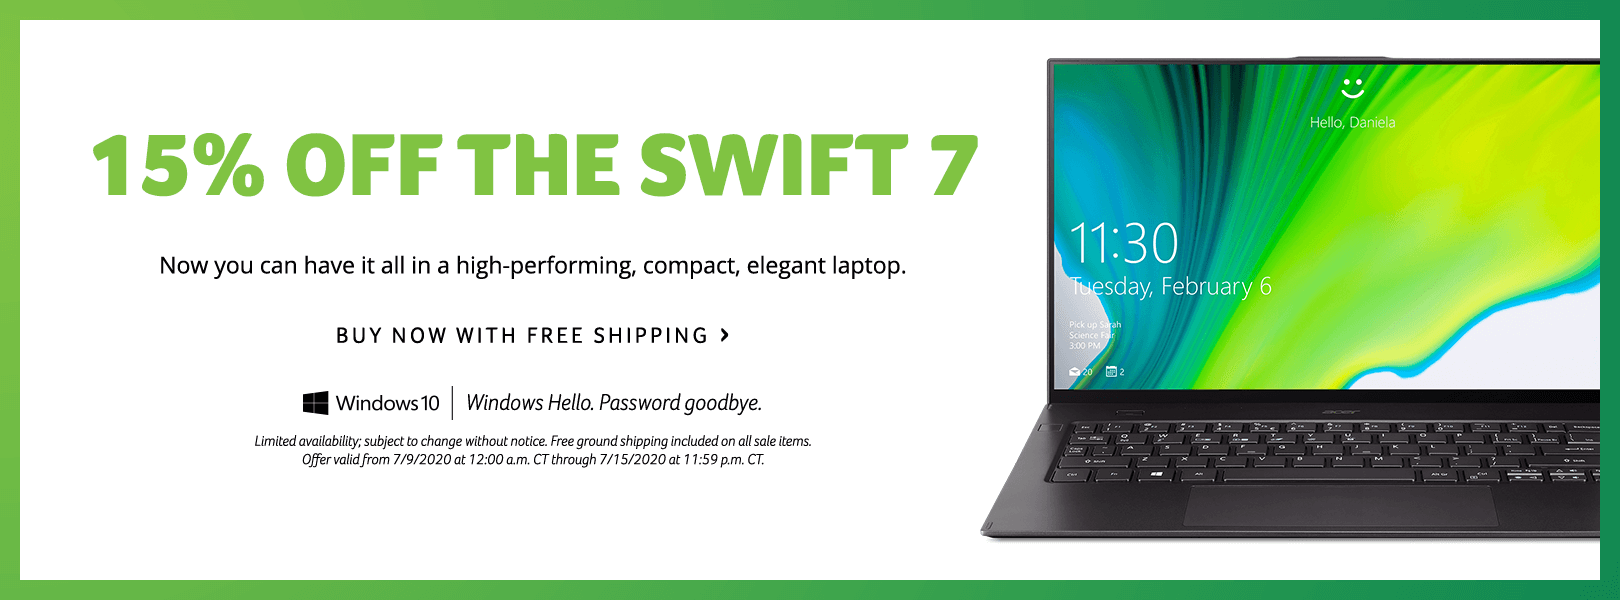 Save 15% on the Swift 7